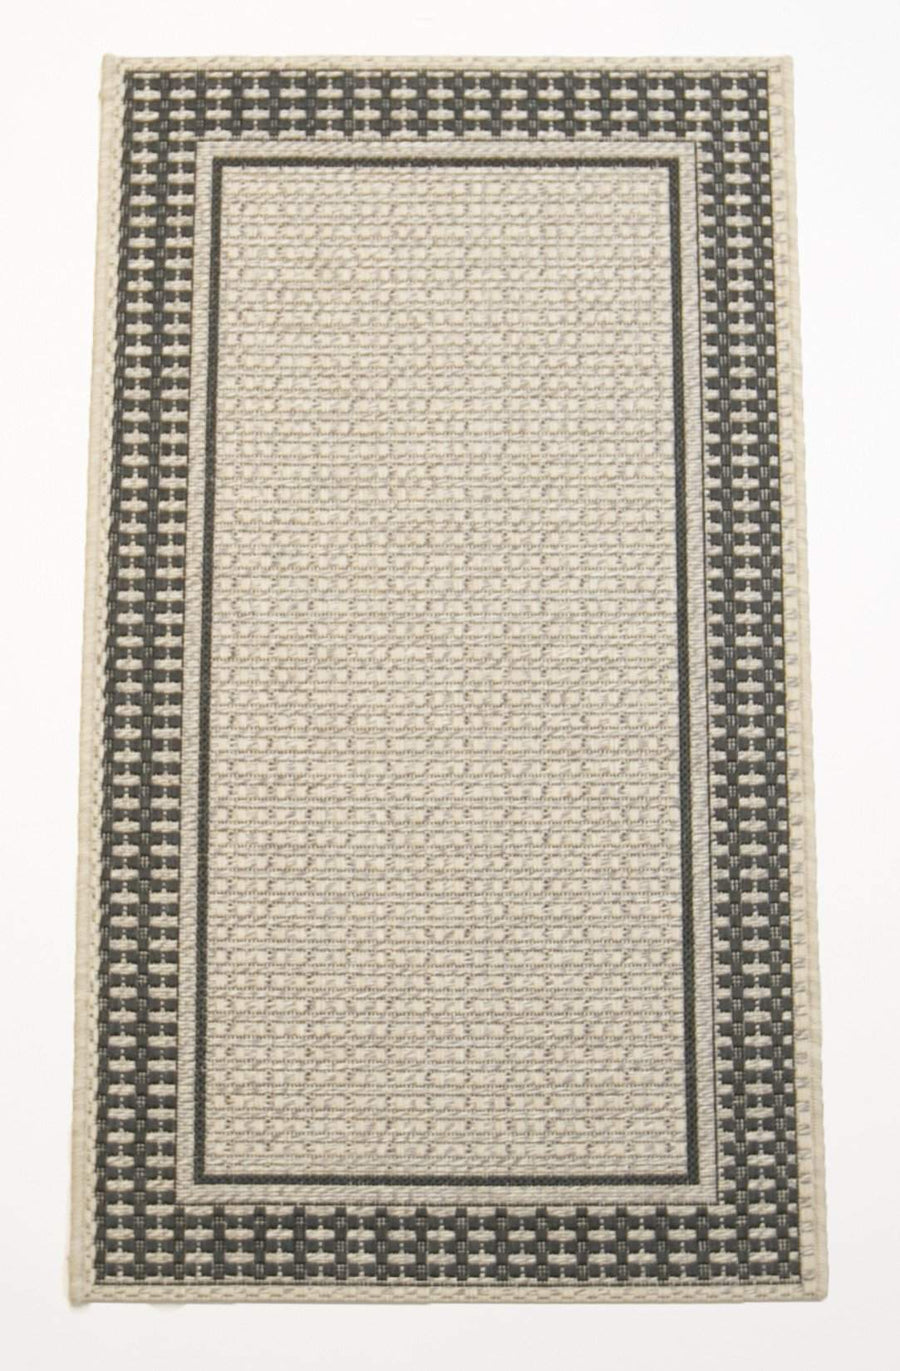 2' x 4' Tides Outdoor Small Area Runner-Area Rugs-Rug Shop and More